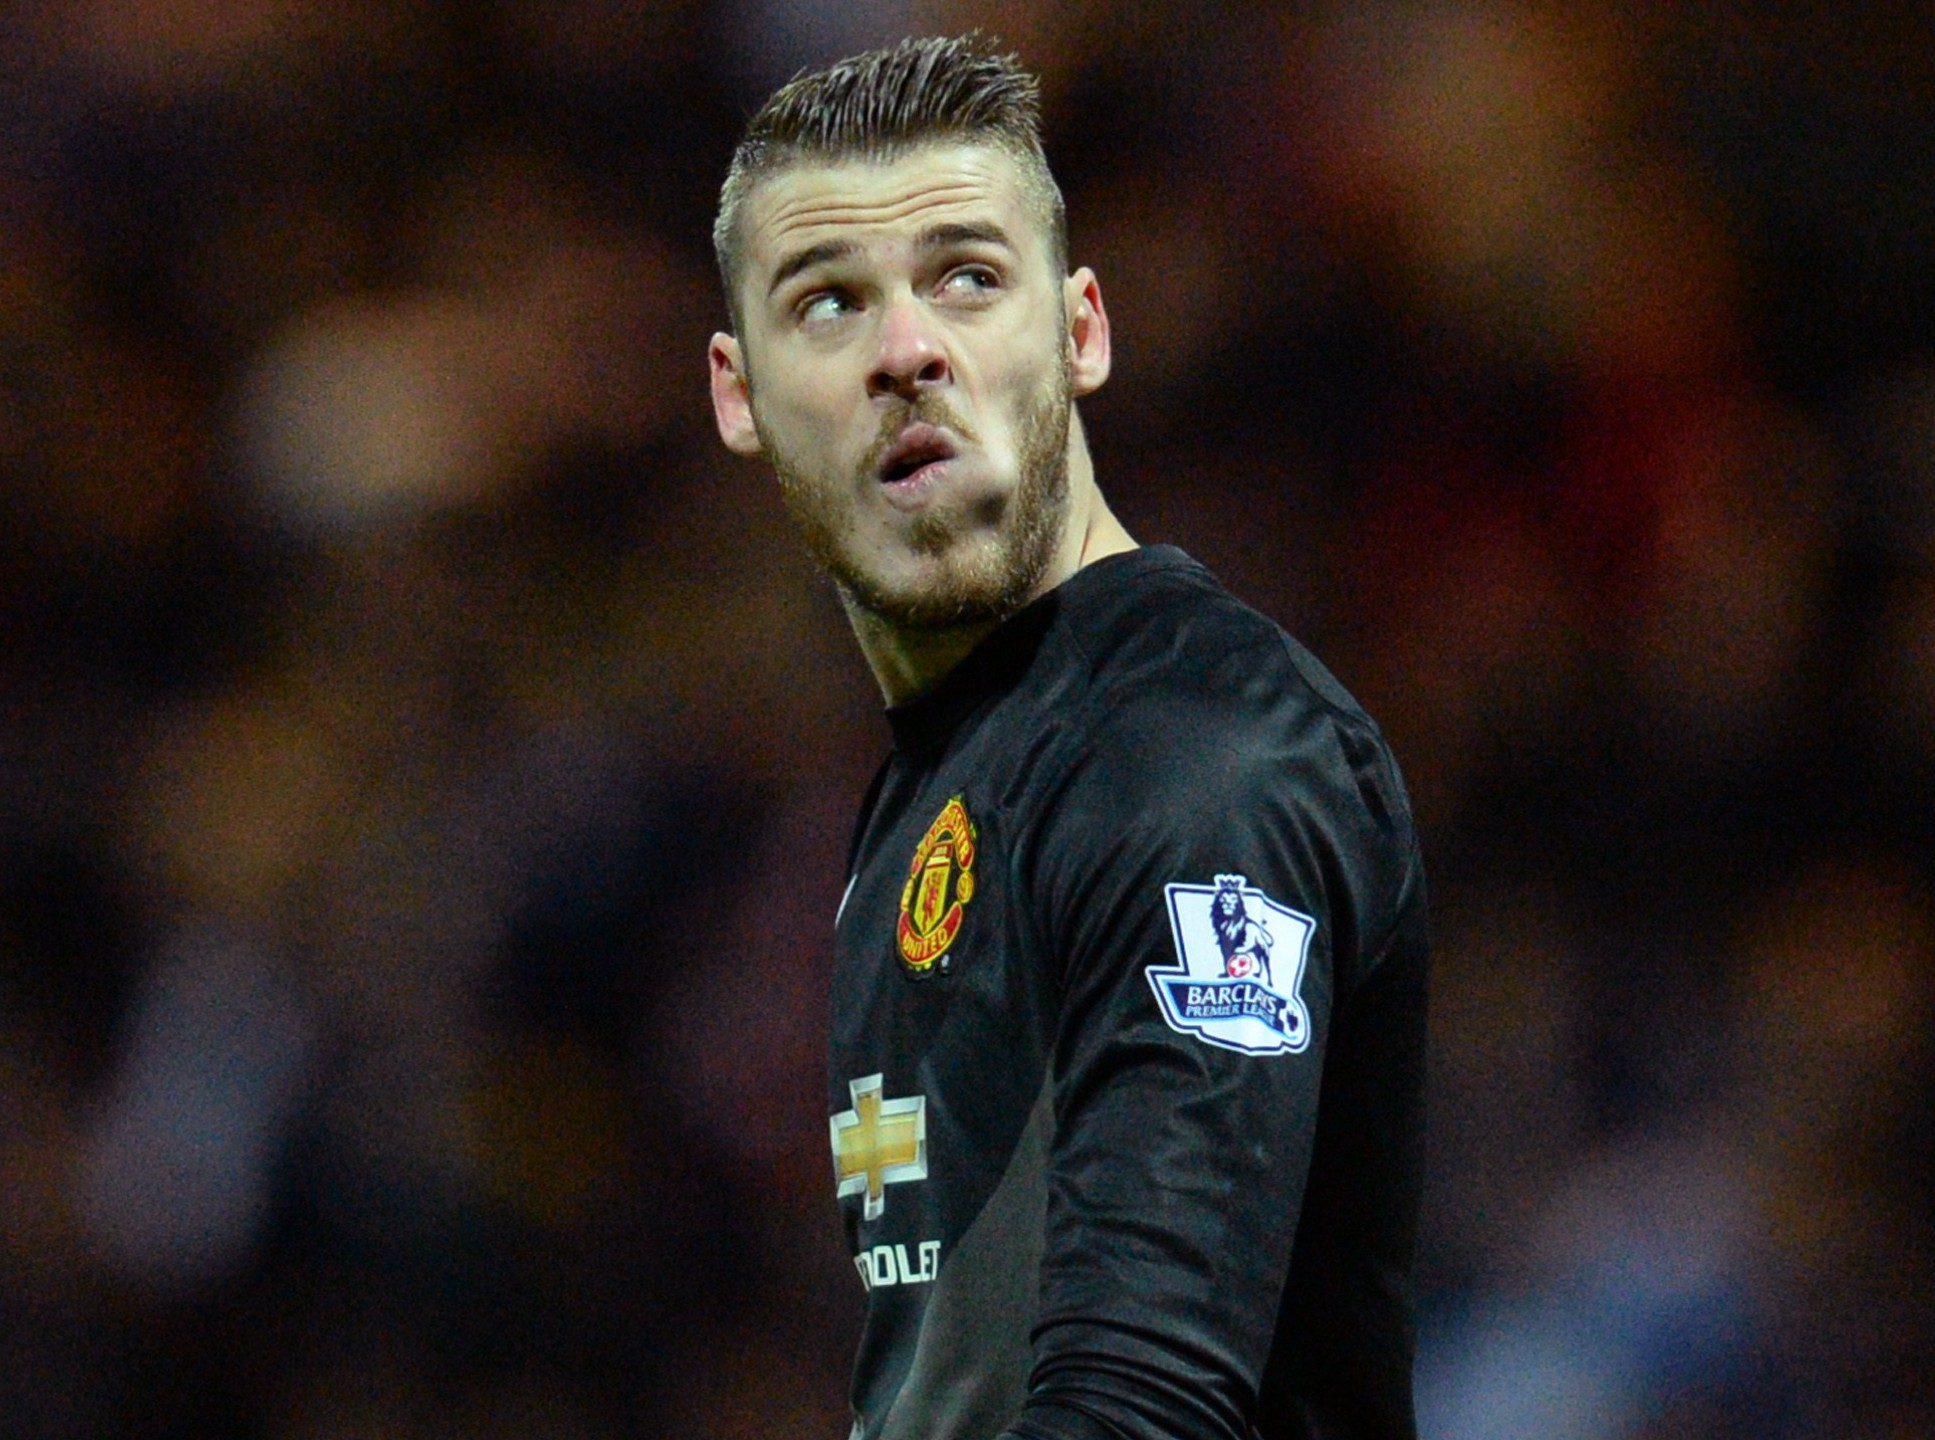 Manchester United's Spanish goalkeeper David de Gea looks at the replay screen during the FA Cup fifth round football match between Preston North End and Manchester United at Deepdale Stadium in Preston, north west England, on February 16, 2015. AFP PHOTO / OLI SCARFF  == RESTRICTED TO EDITORIAL USE. No use with unauthorized audio, video, data, fixture lists, club/league logos or live services. Online in-match use limited to 45 images, no video emulation. No use in betting, games or single club/league/player publications.  ==        (Photo credit should read OLI SCARFF/AFP/Getty Images)